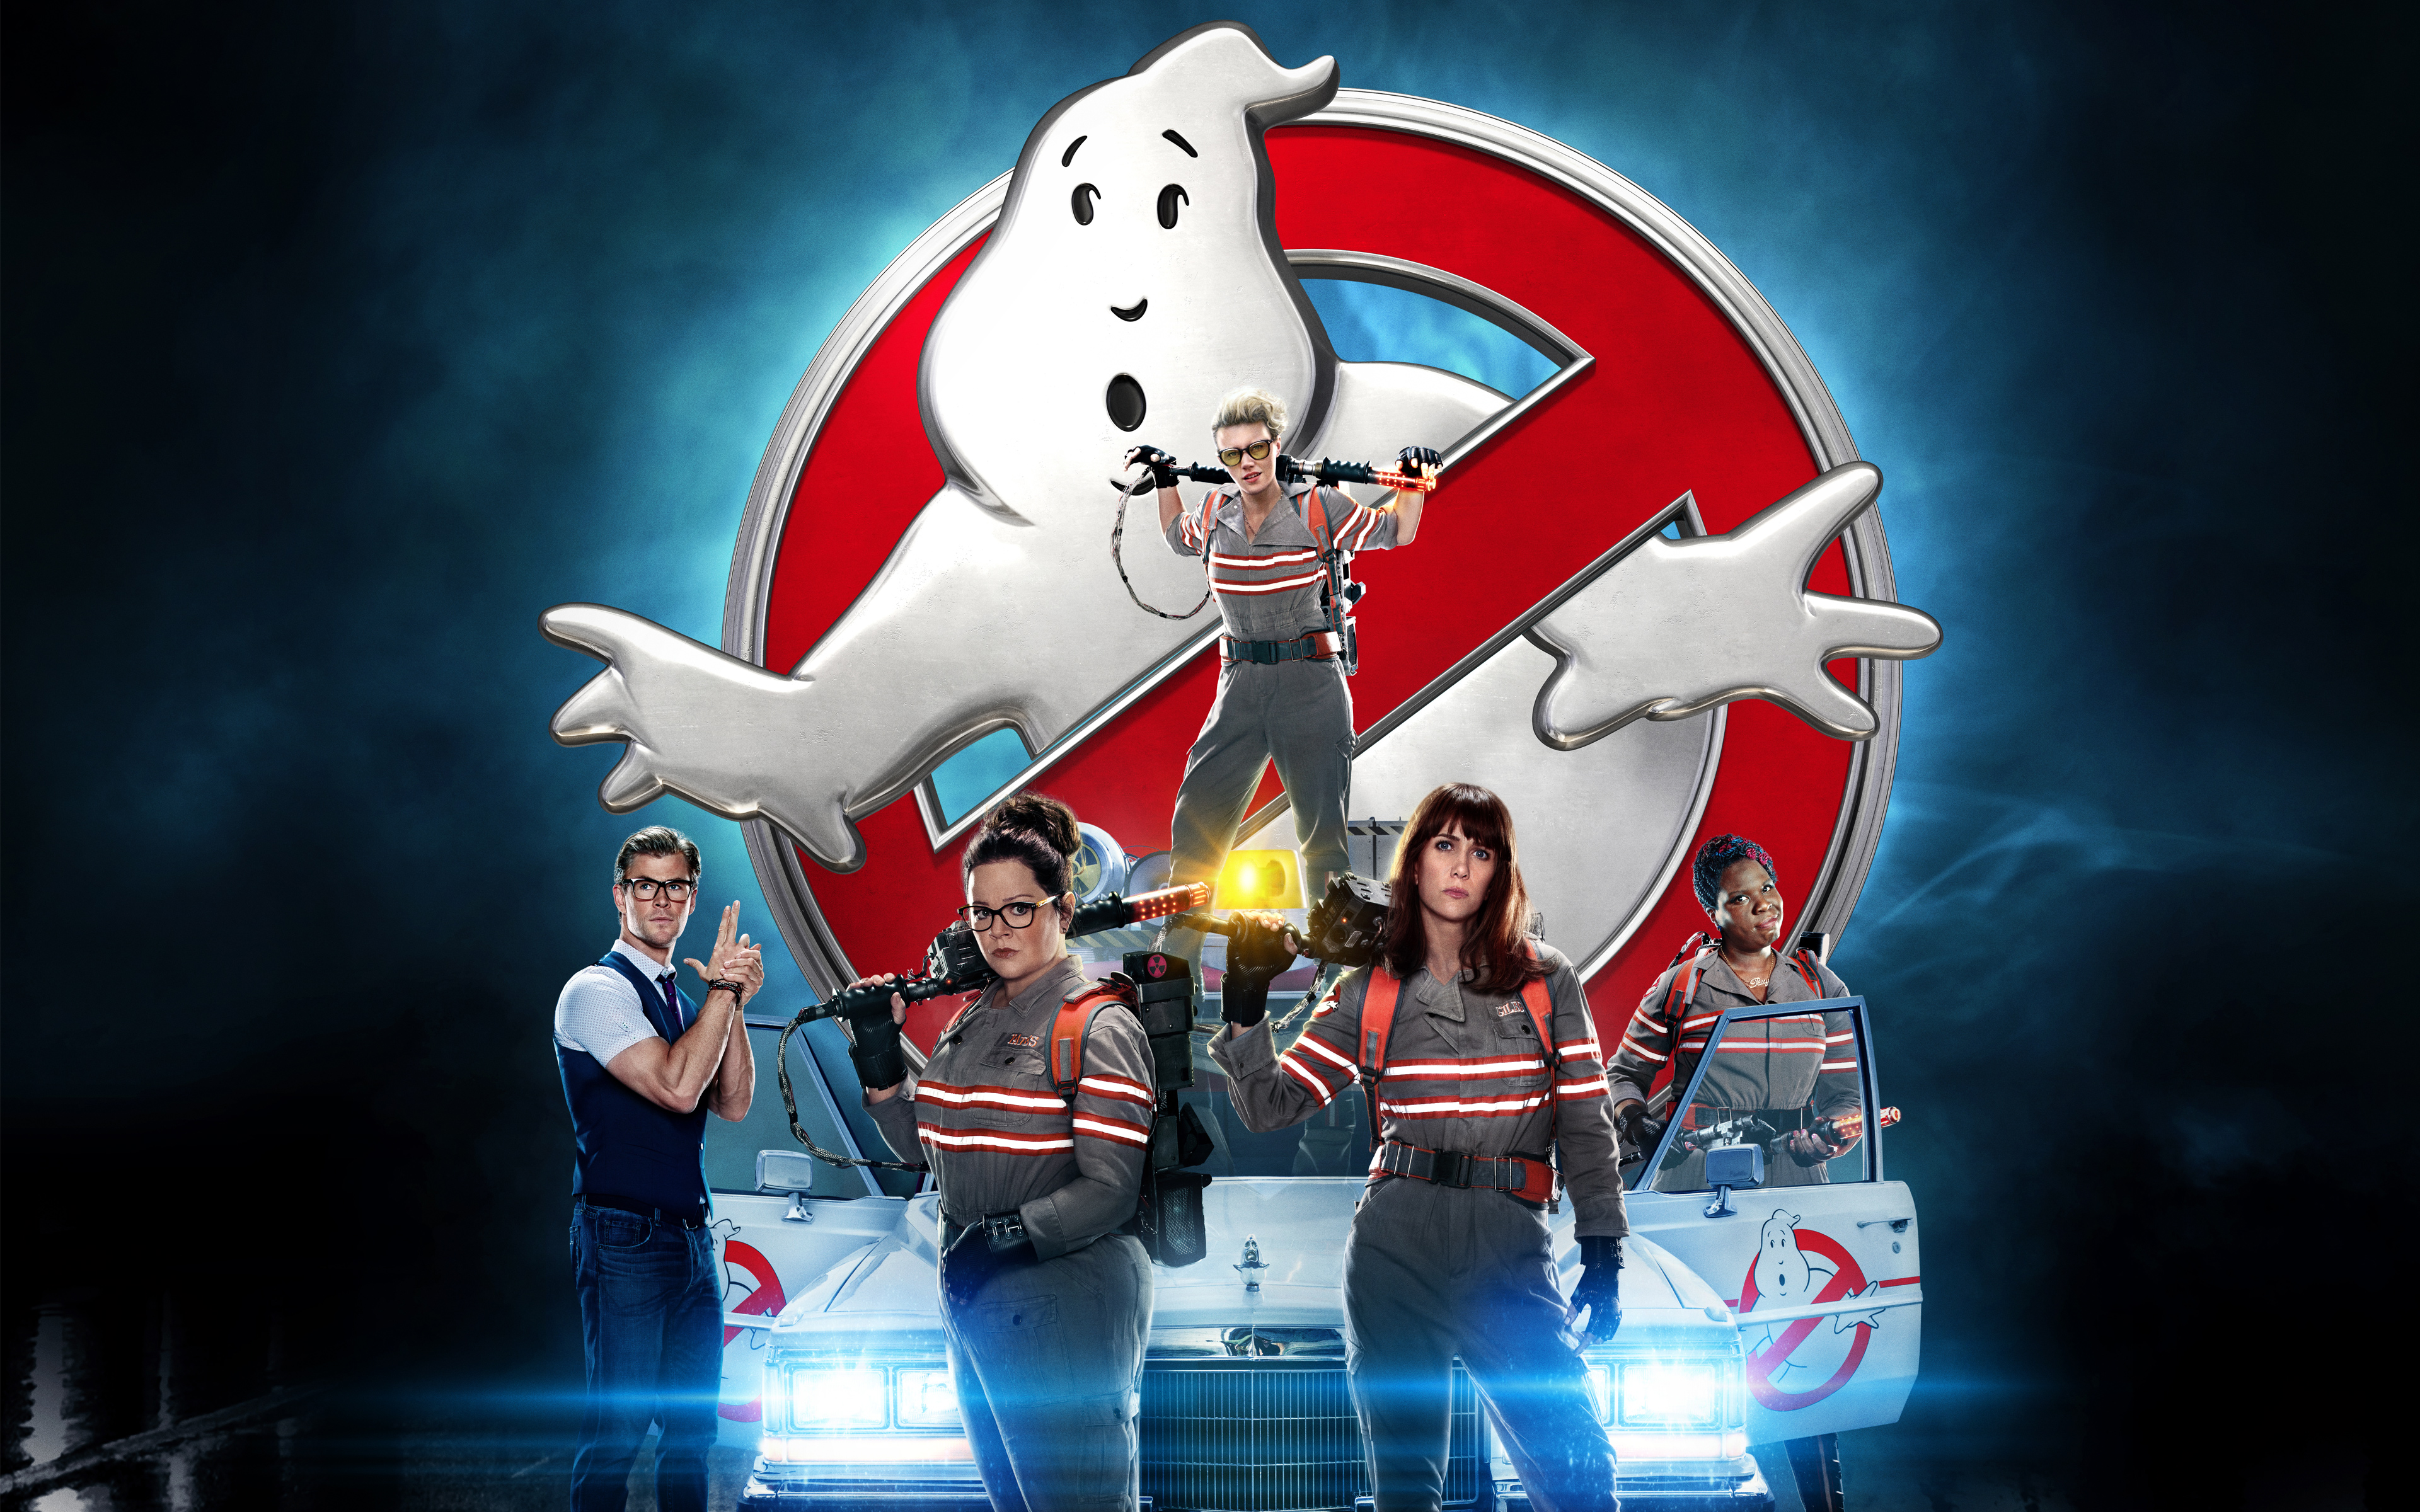 480x800 Ghostbusters HD Galaxy Note,HTC Desire,Nokia Lumia